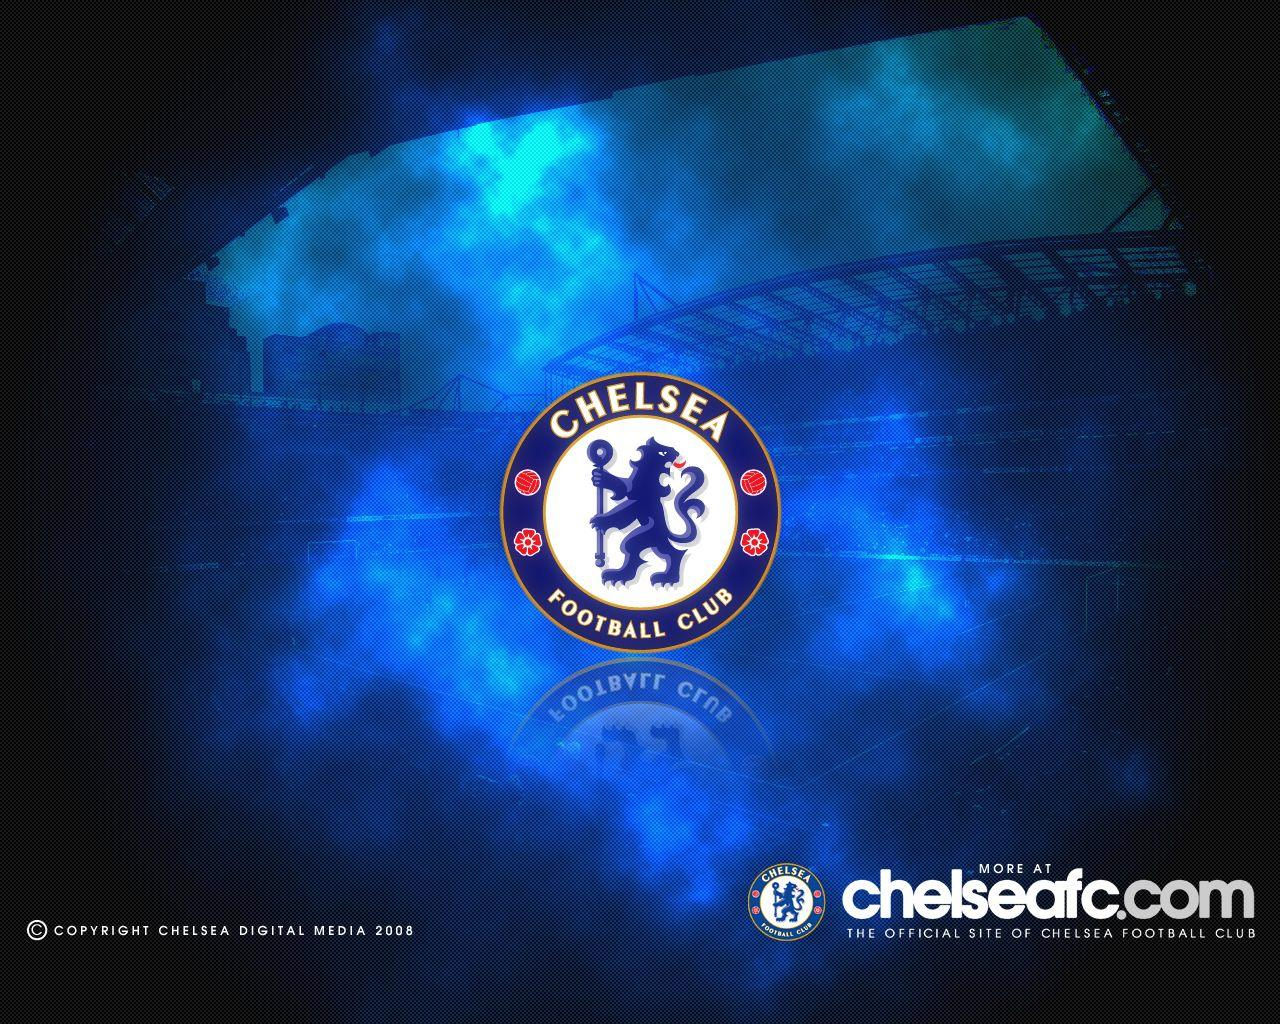 Chelsea F C 2019 Wallpapers Wallpaper Cave